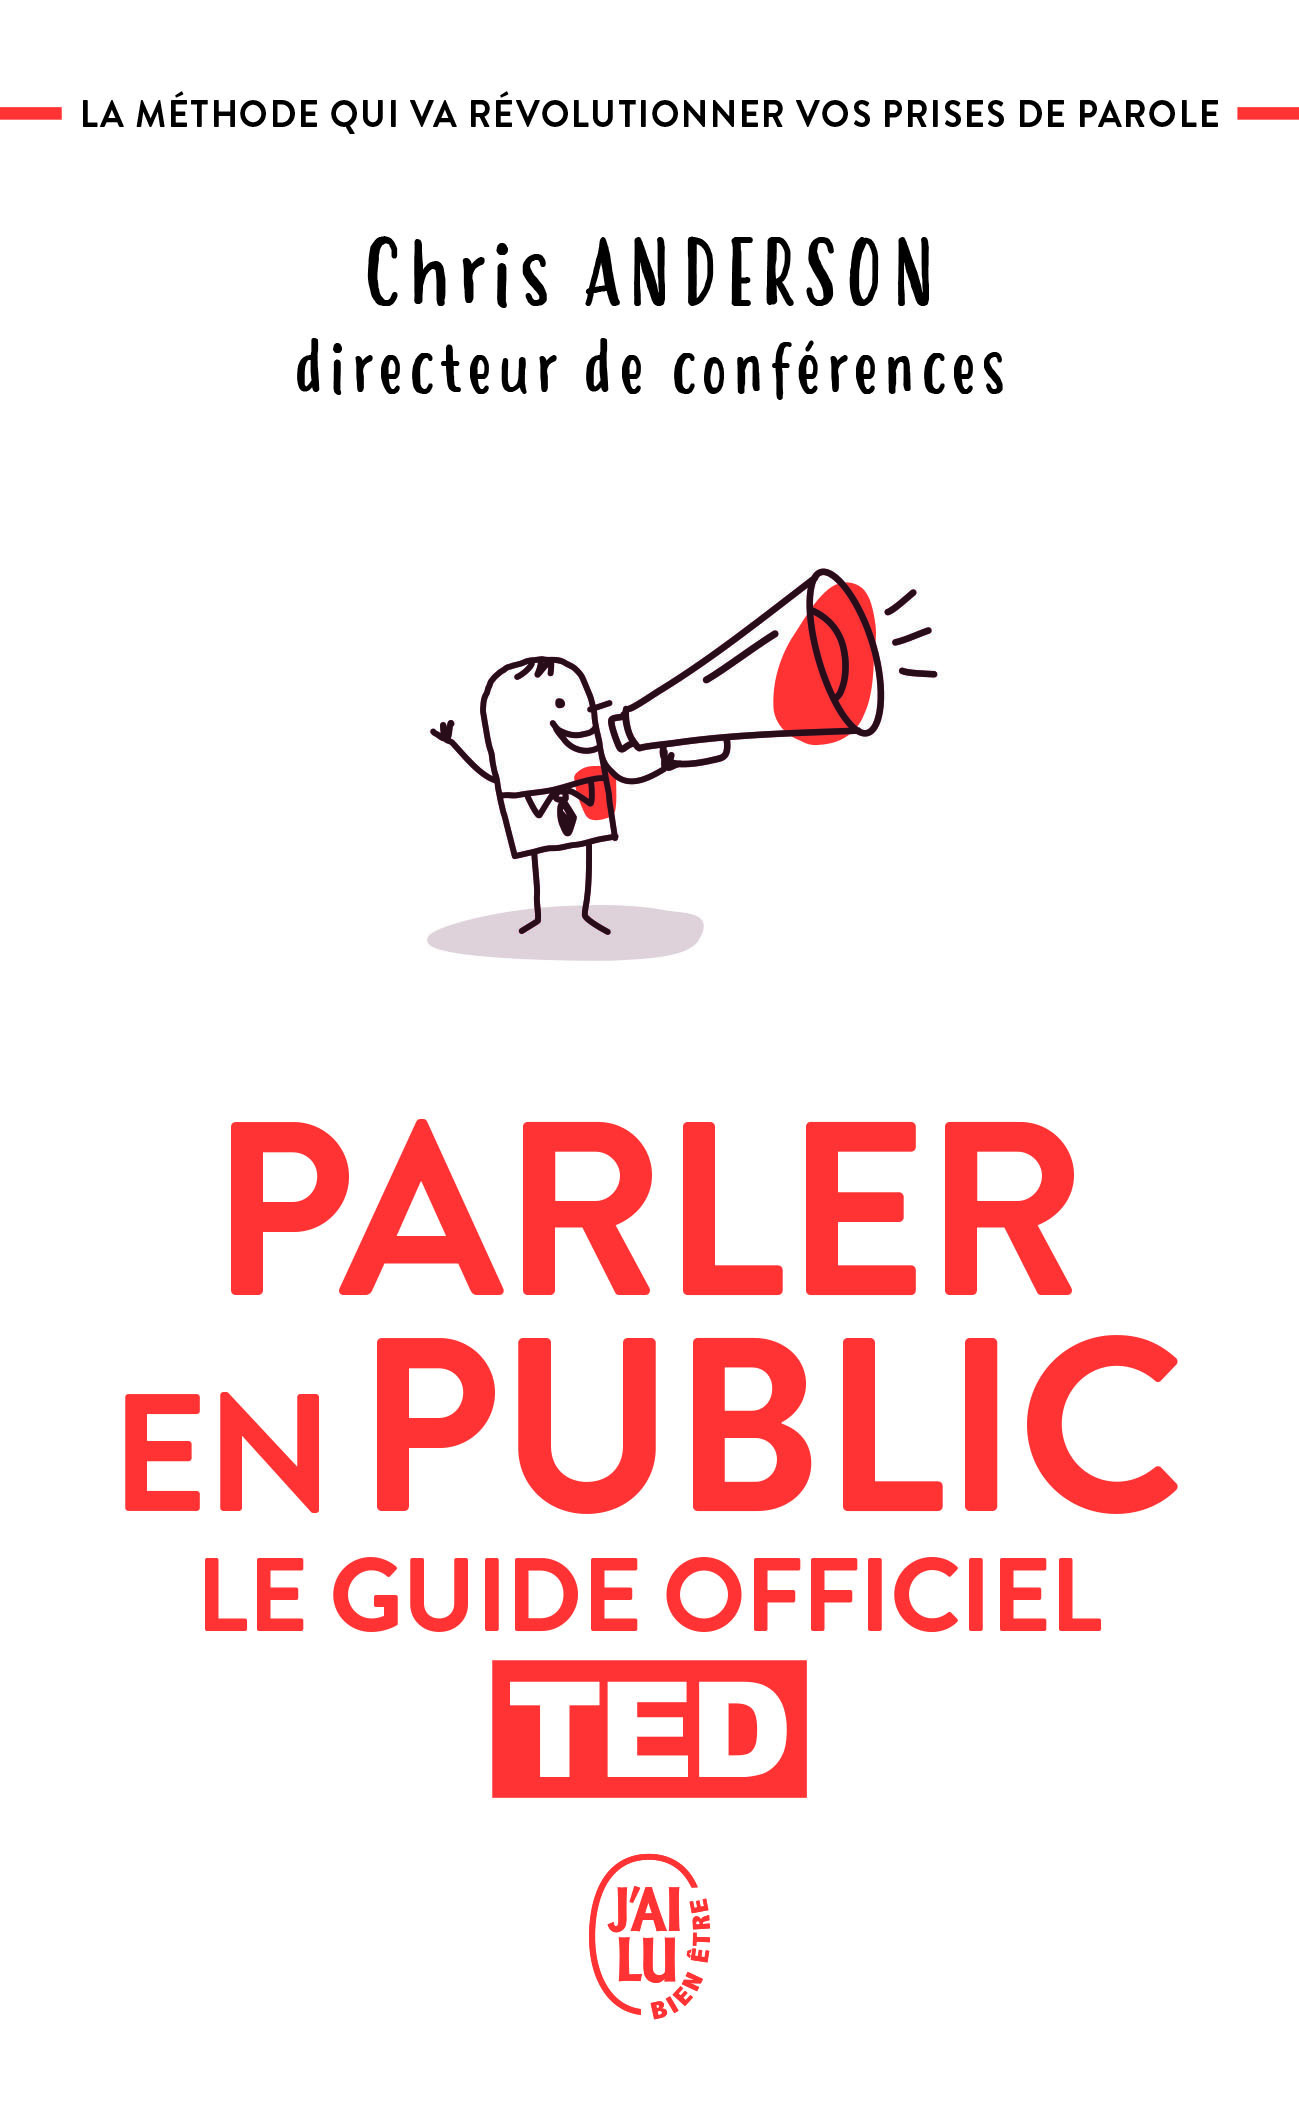 DEVELOPPEMENT PERSONNEL - PARLER EN PUBLIC - LE GUIDE OFFICIEL TED